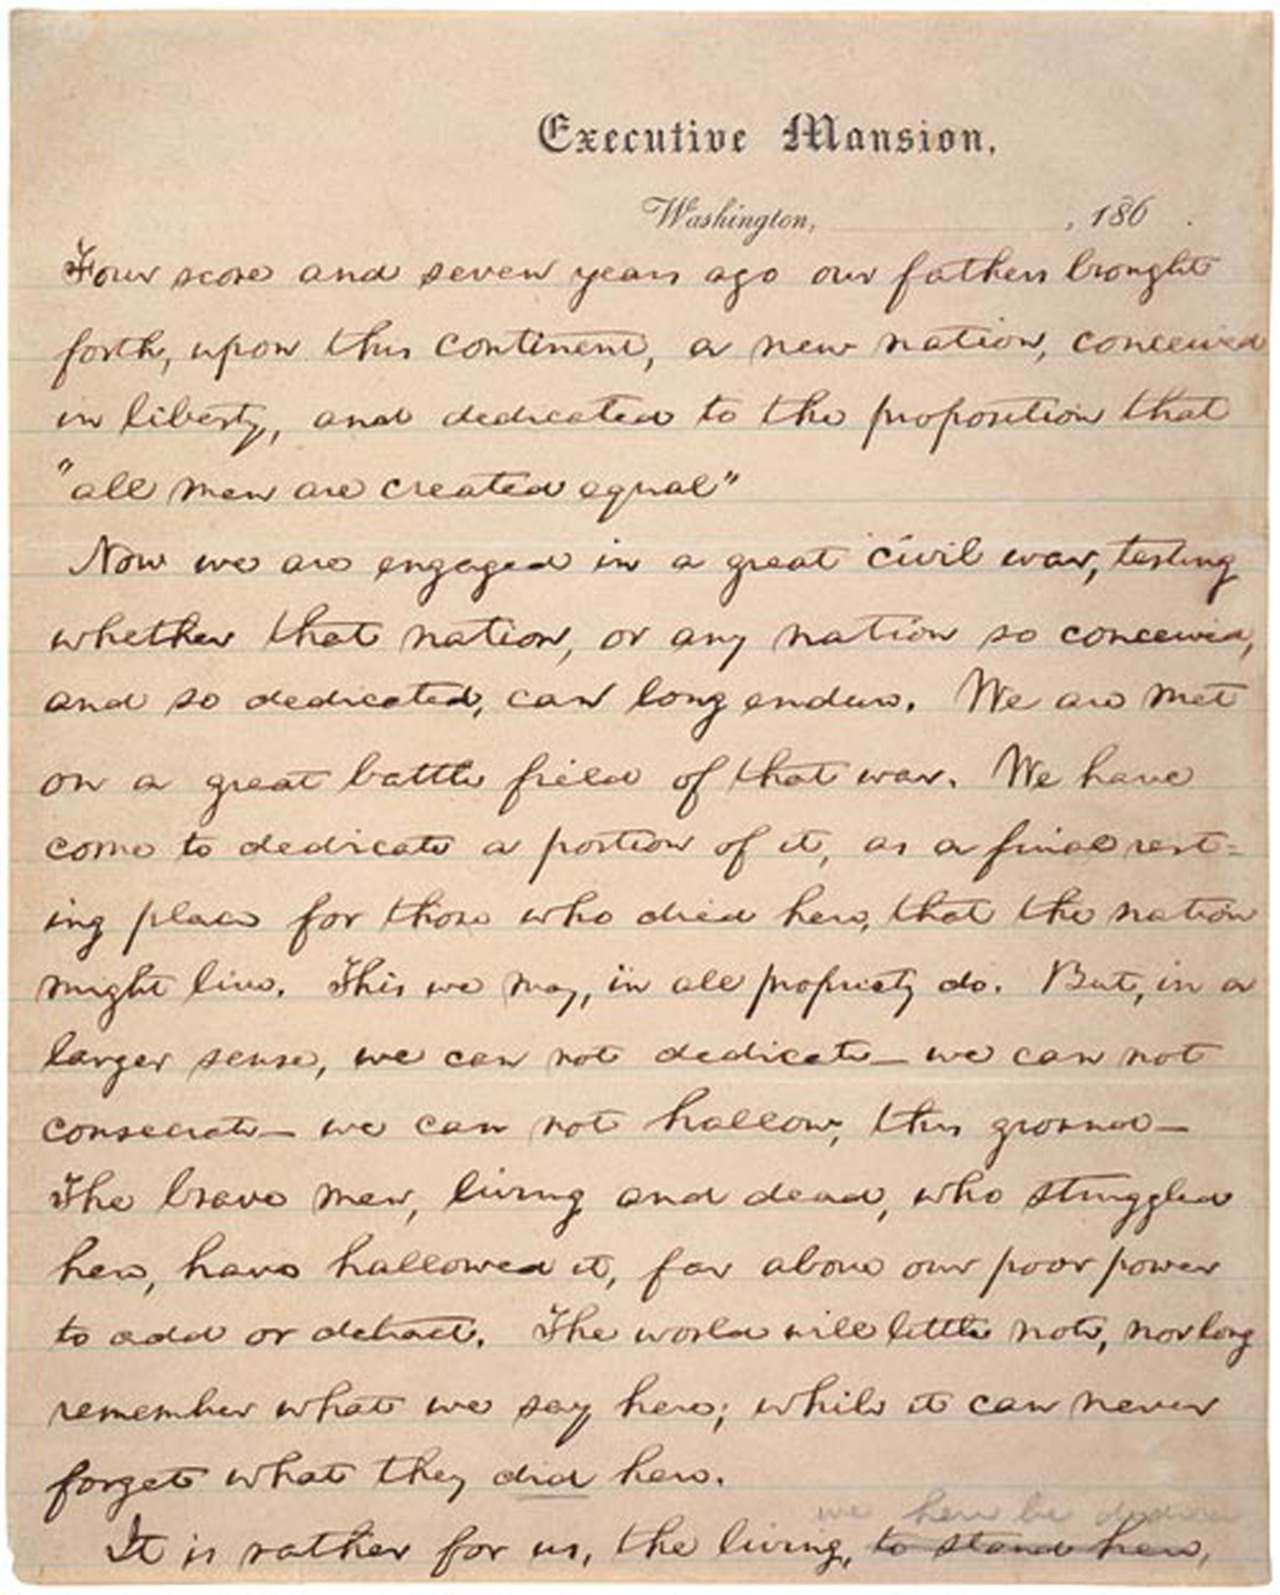 Today S Document Lincoln At Gettysburg 150 Years Ago On